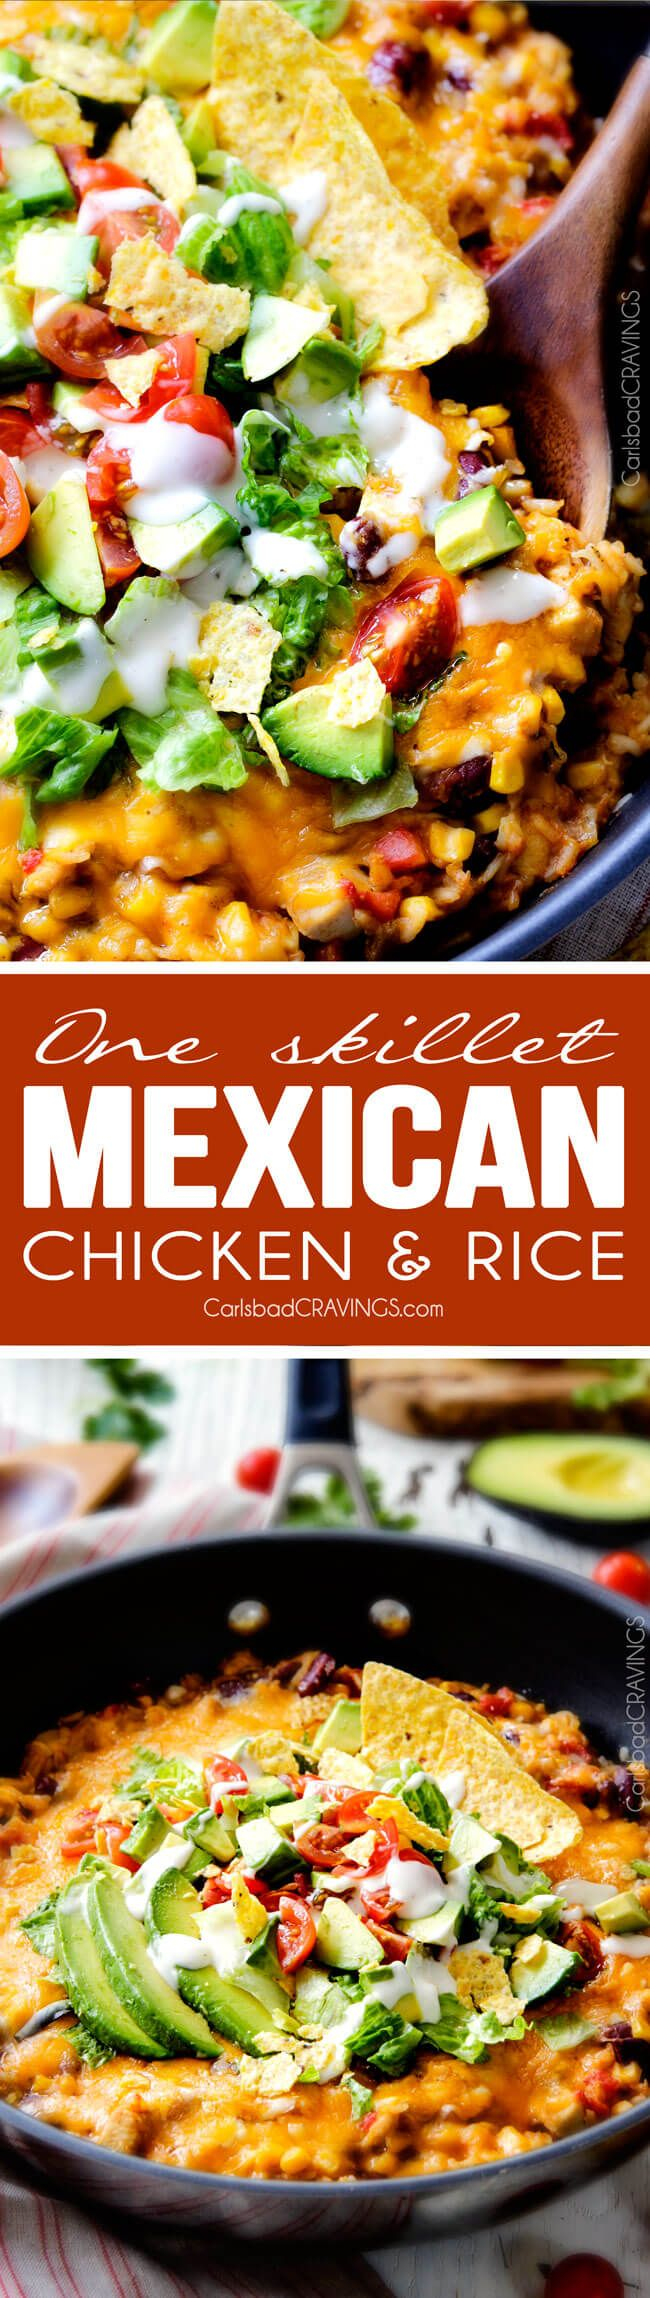 Creamy, Cheesy One Skillet Mexican Chicken and Rice on your table in 30 minutes! Quick, easy and packed with hearty Southwest flavors and textures!